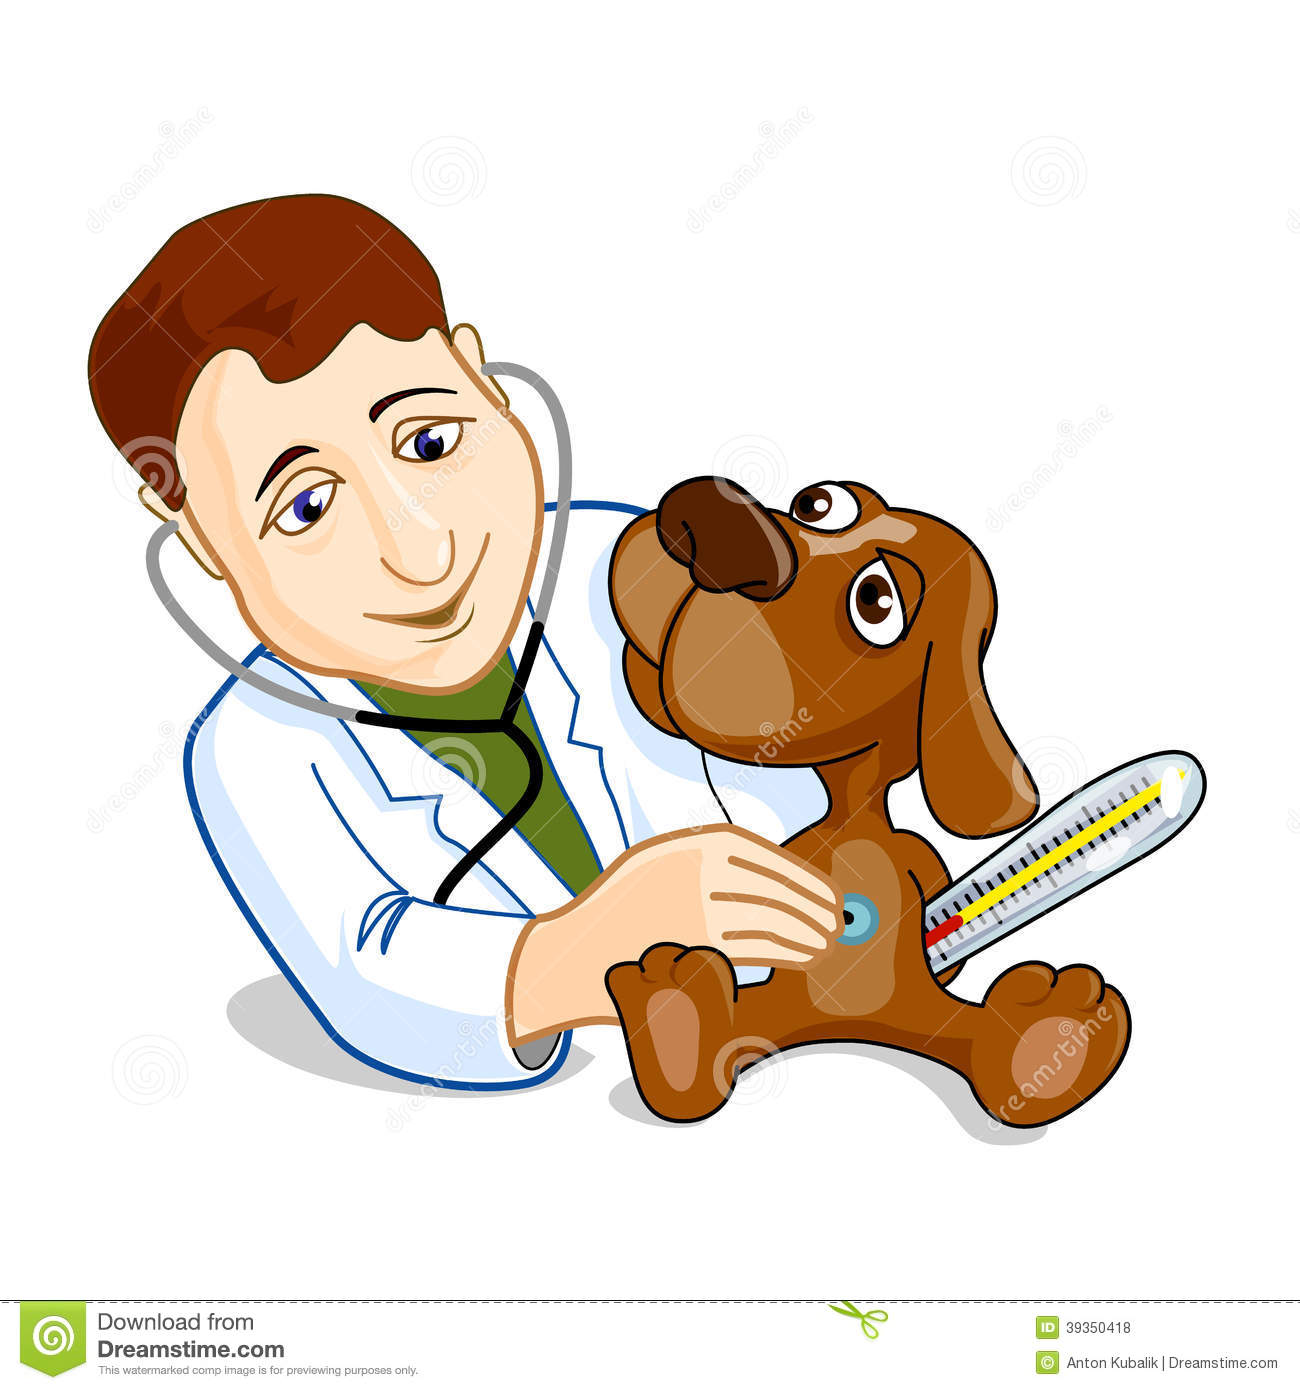 Illustration of veterinarian Veterinary Tools Clip Art